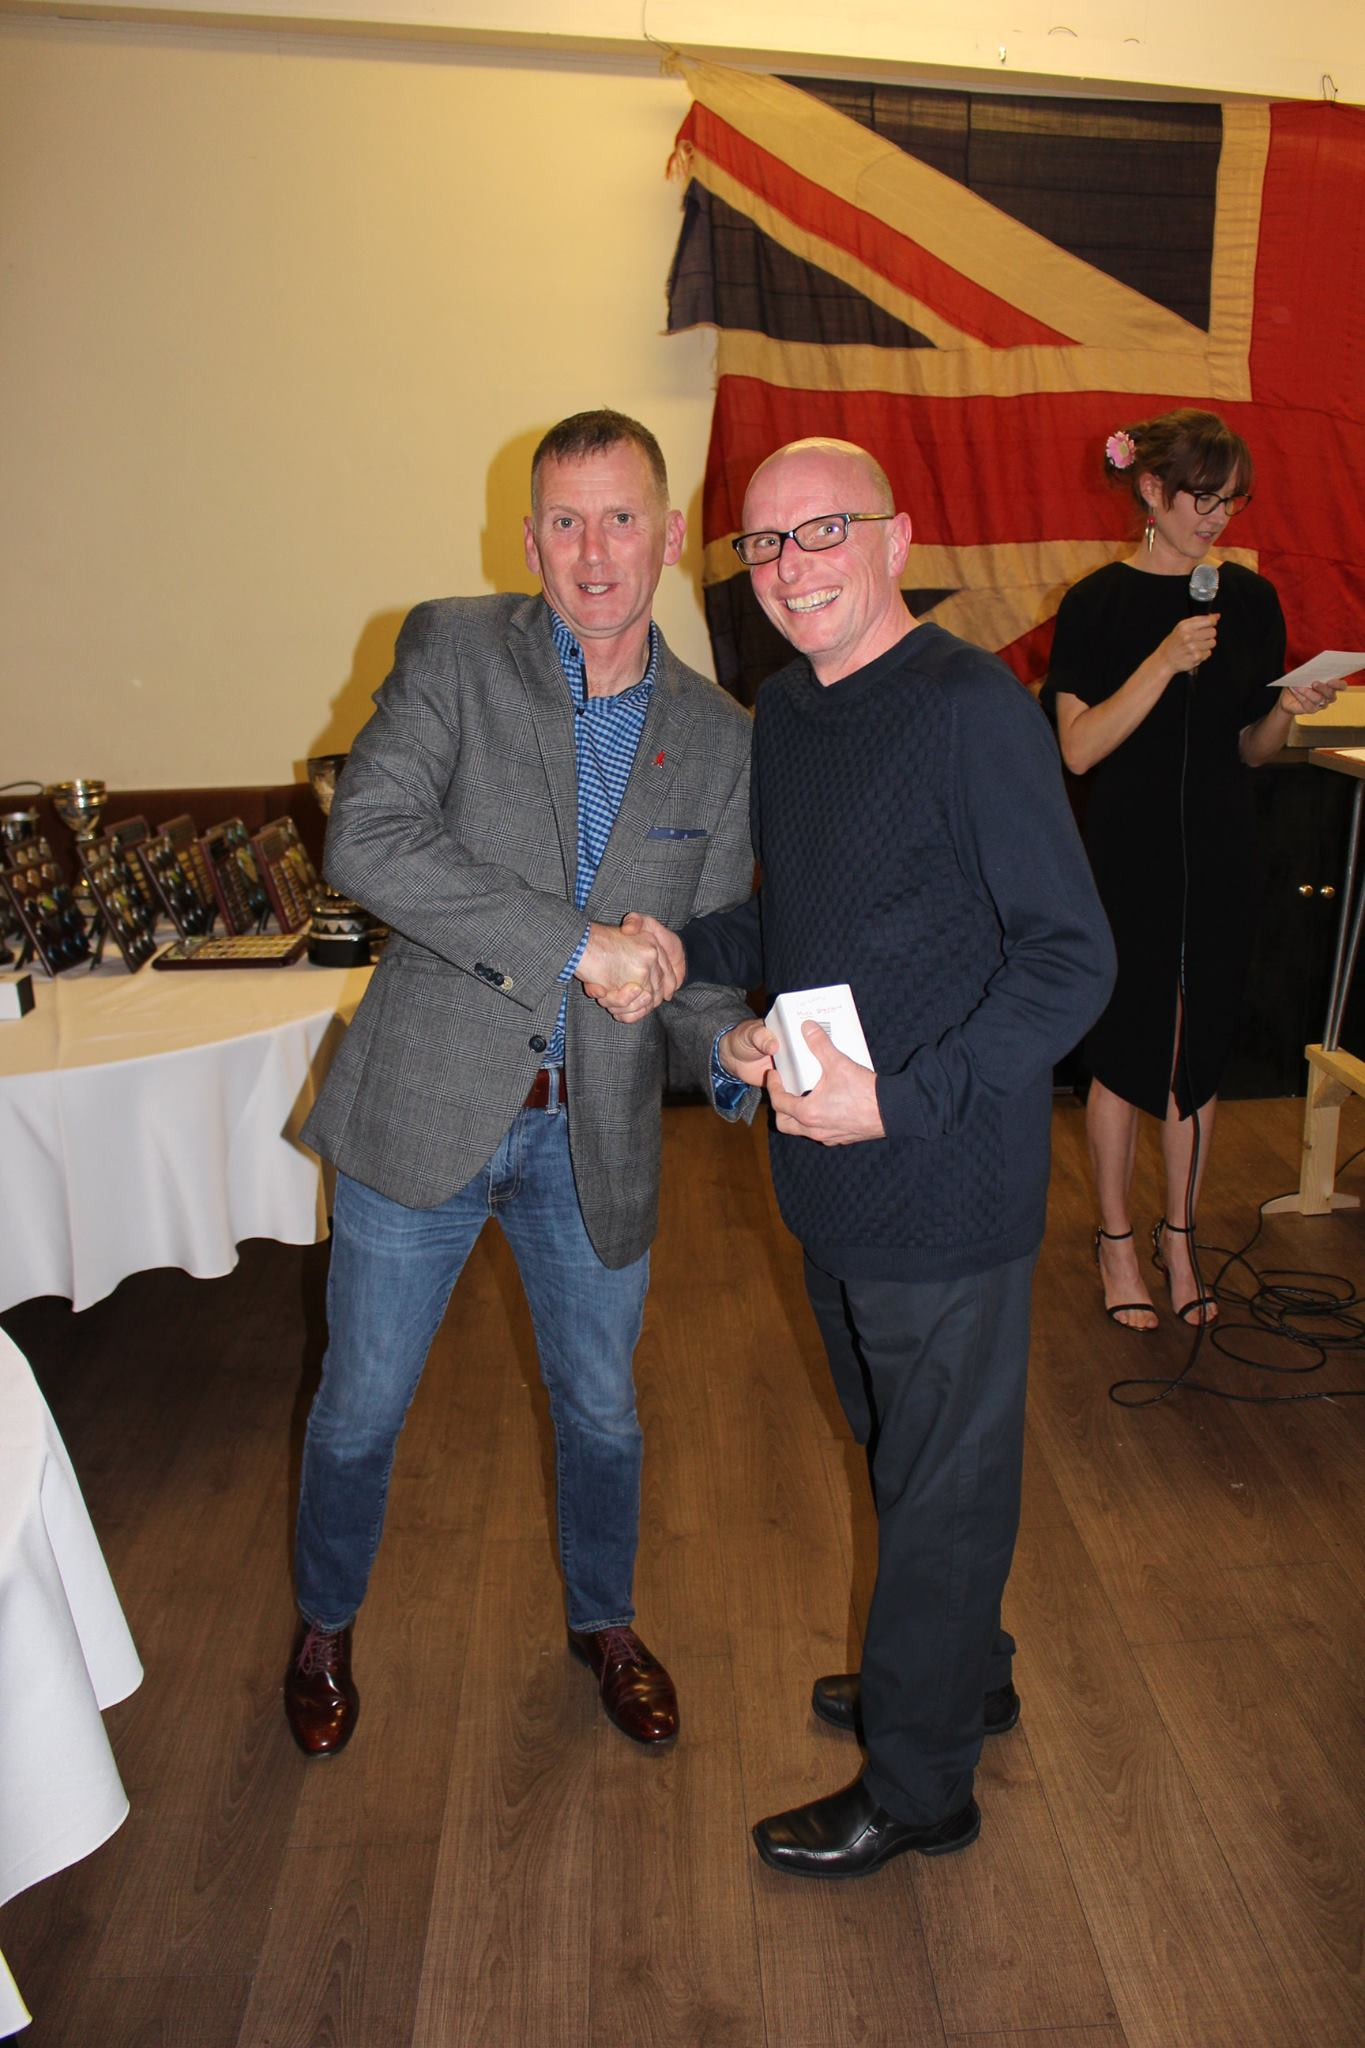 Mick Stafford_Club 10 Handicap Male Runner up.jpg